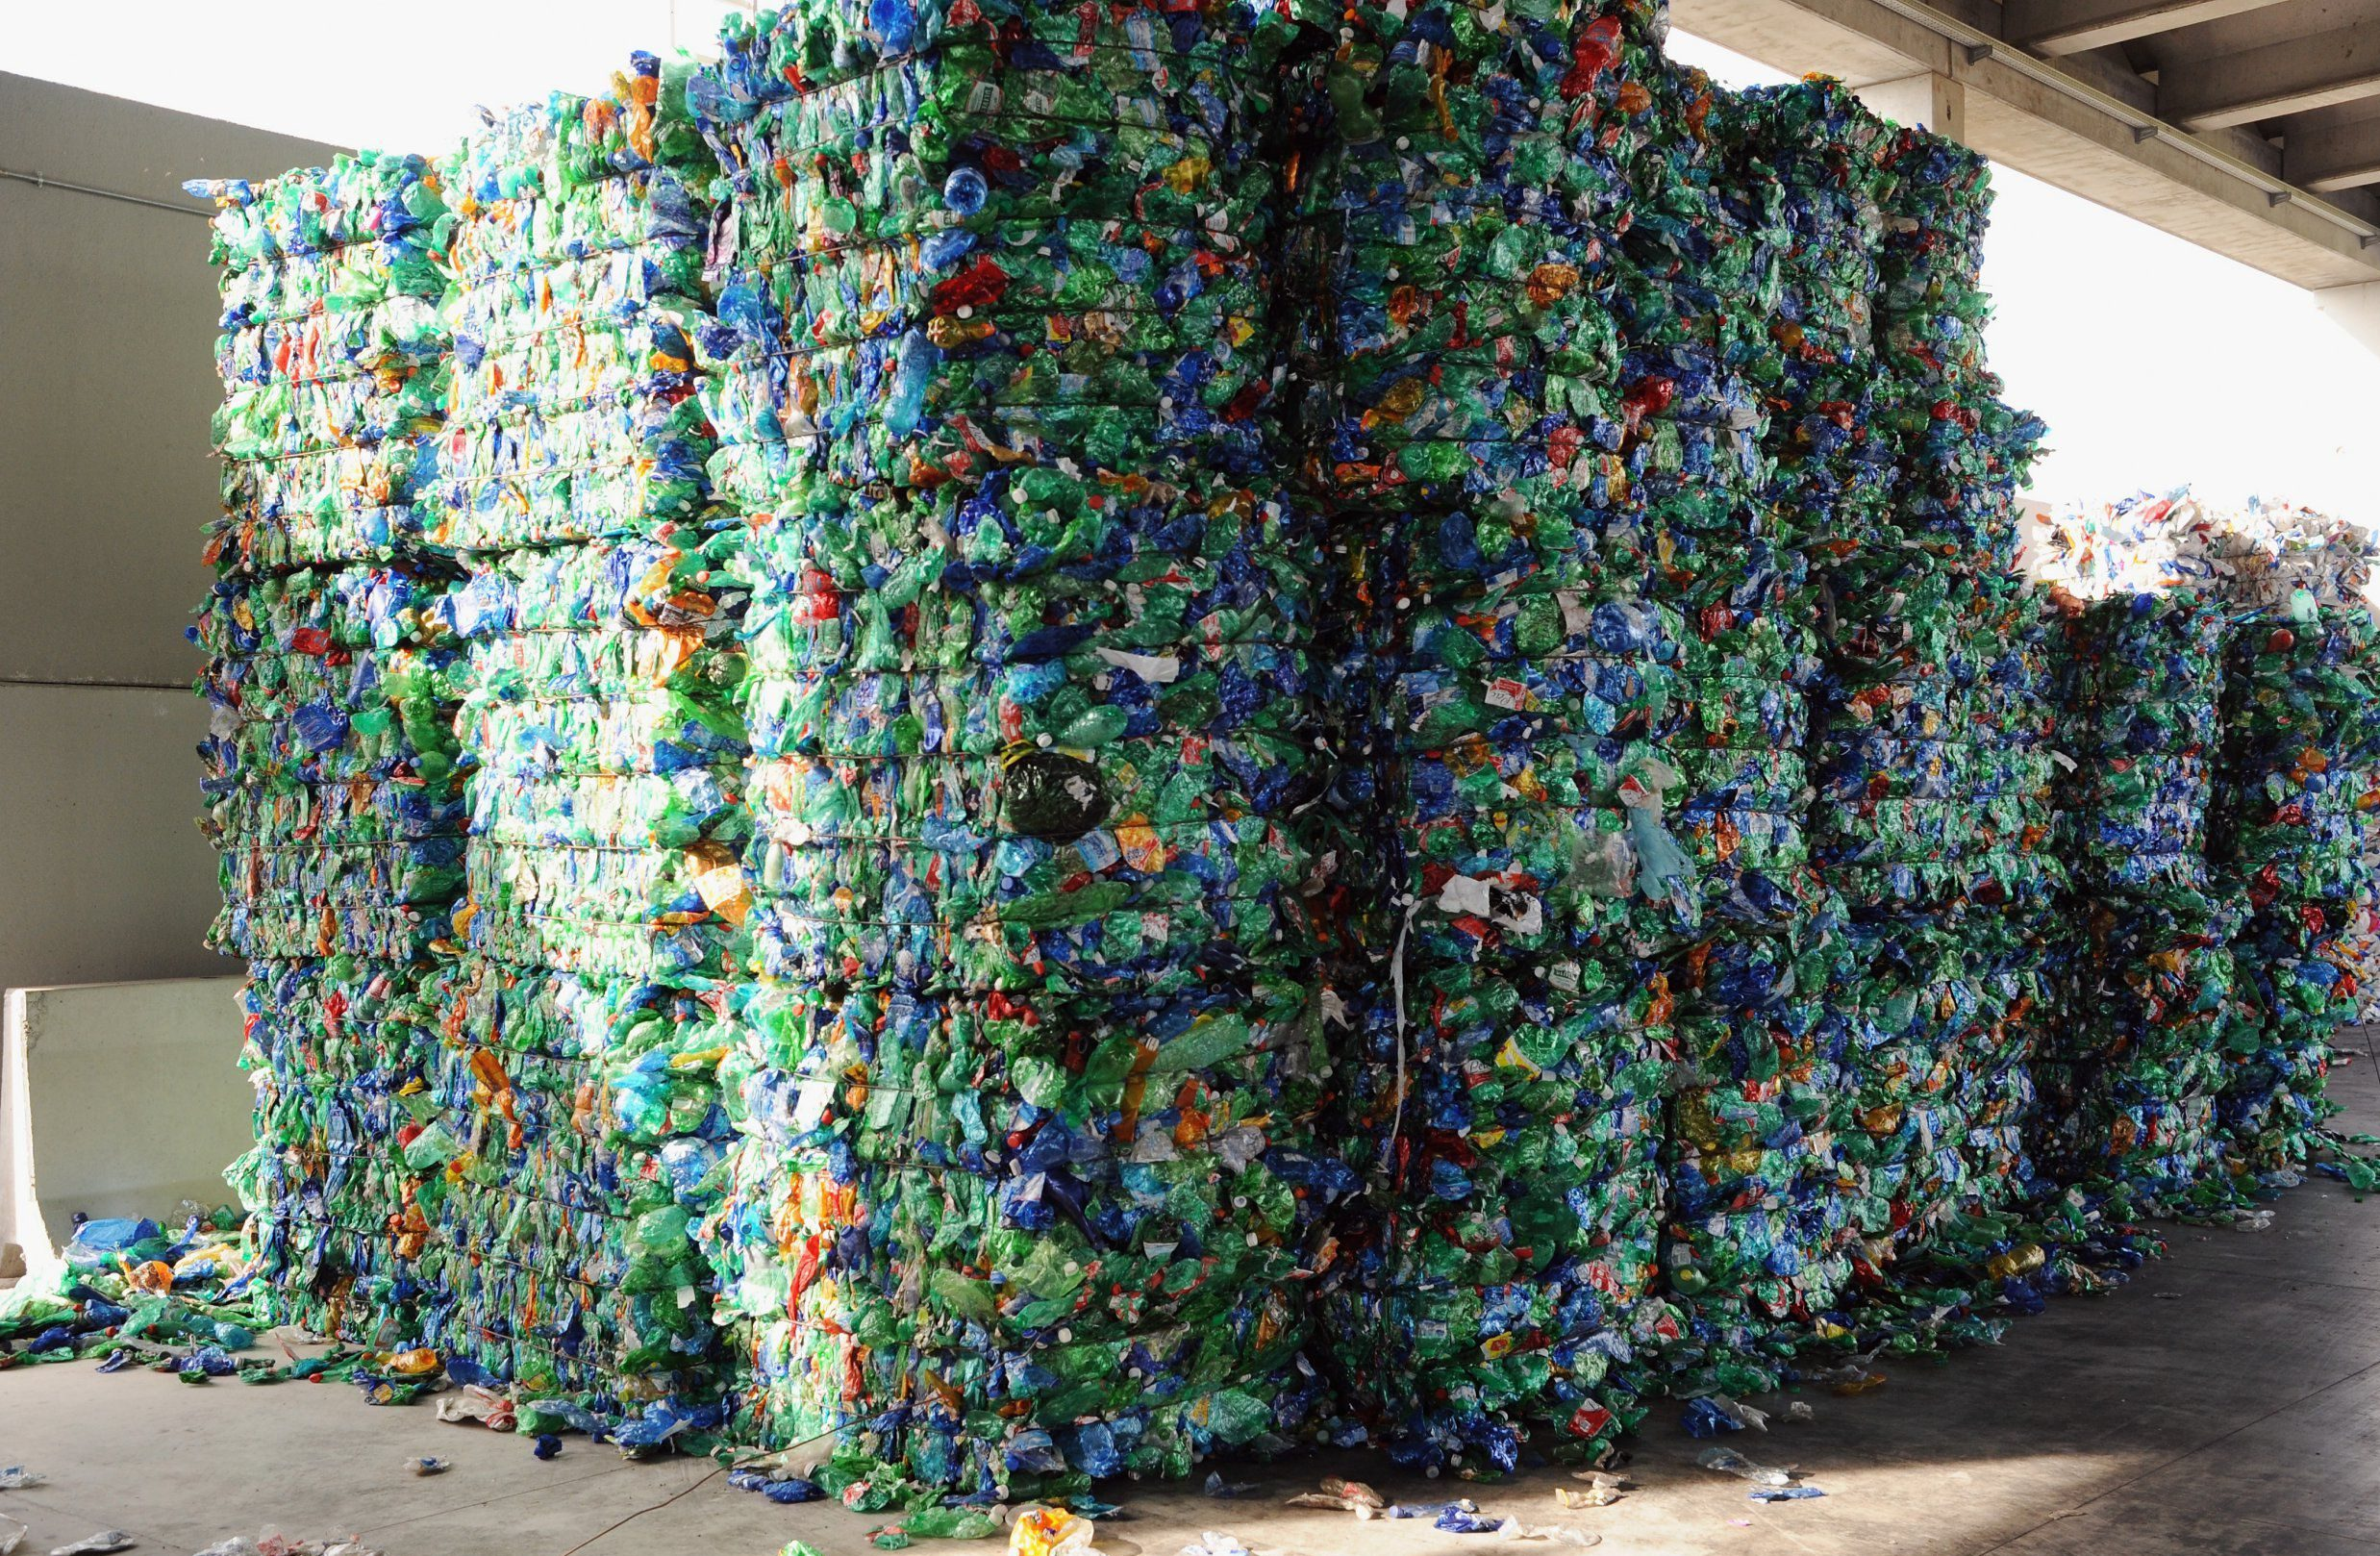 Recycled plastics could make up 75% of UK products and packaging